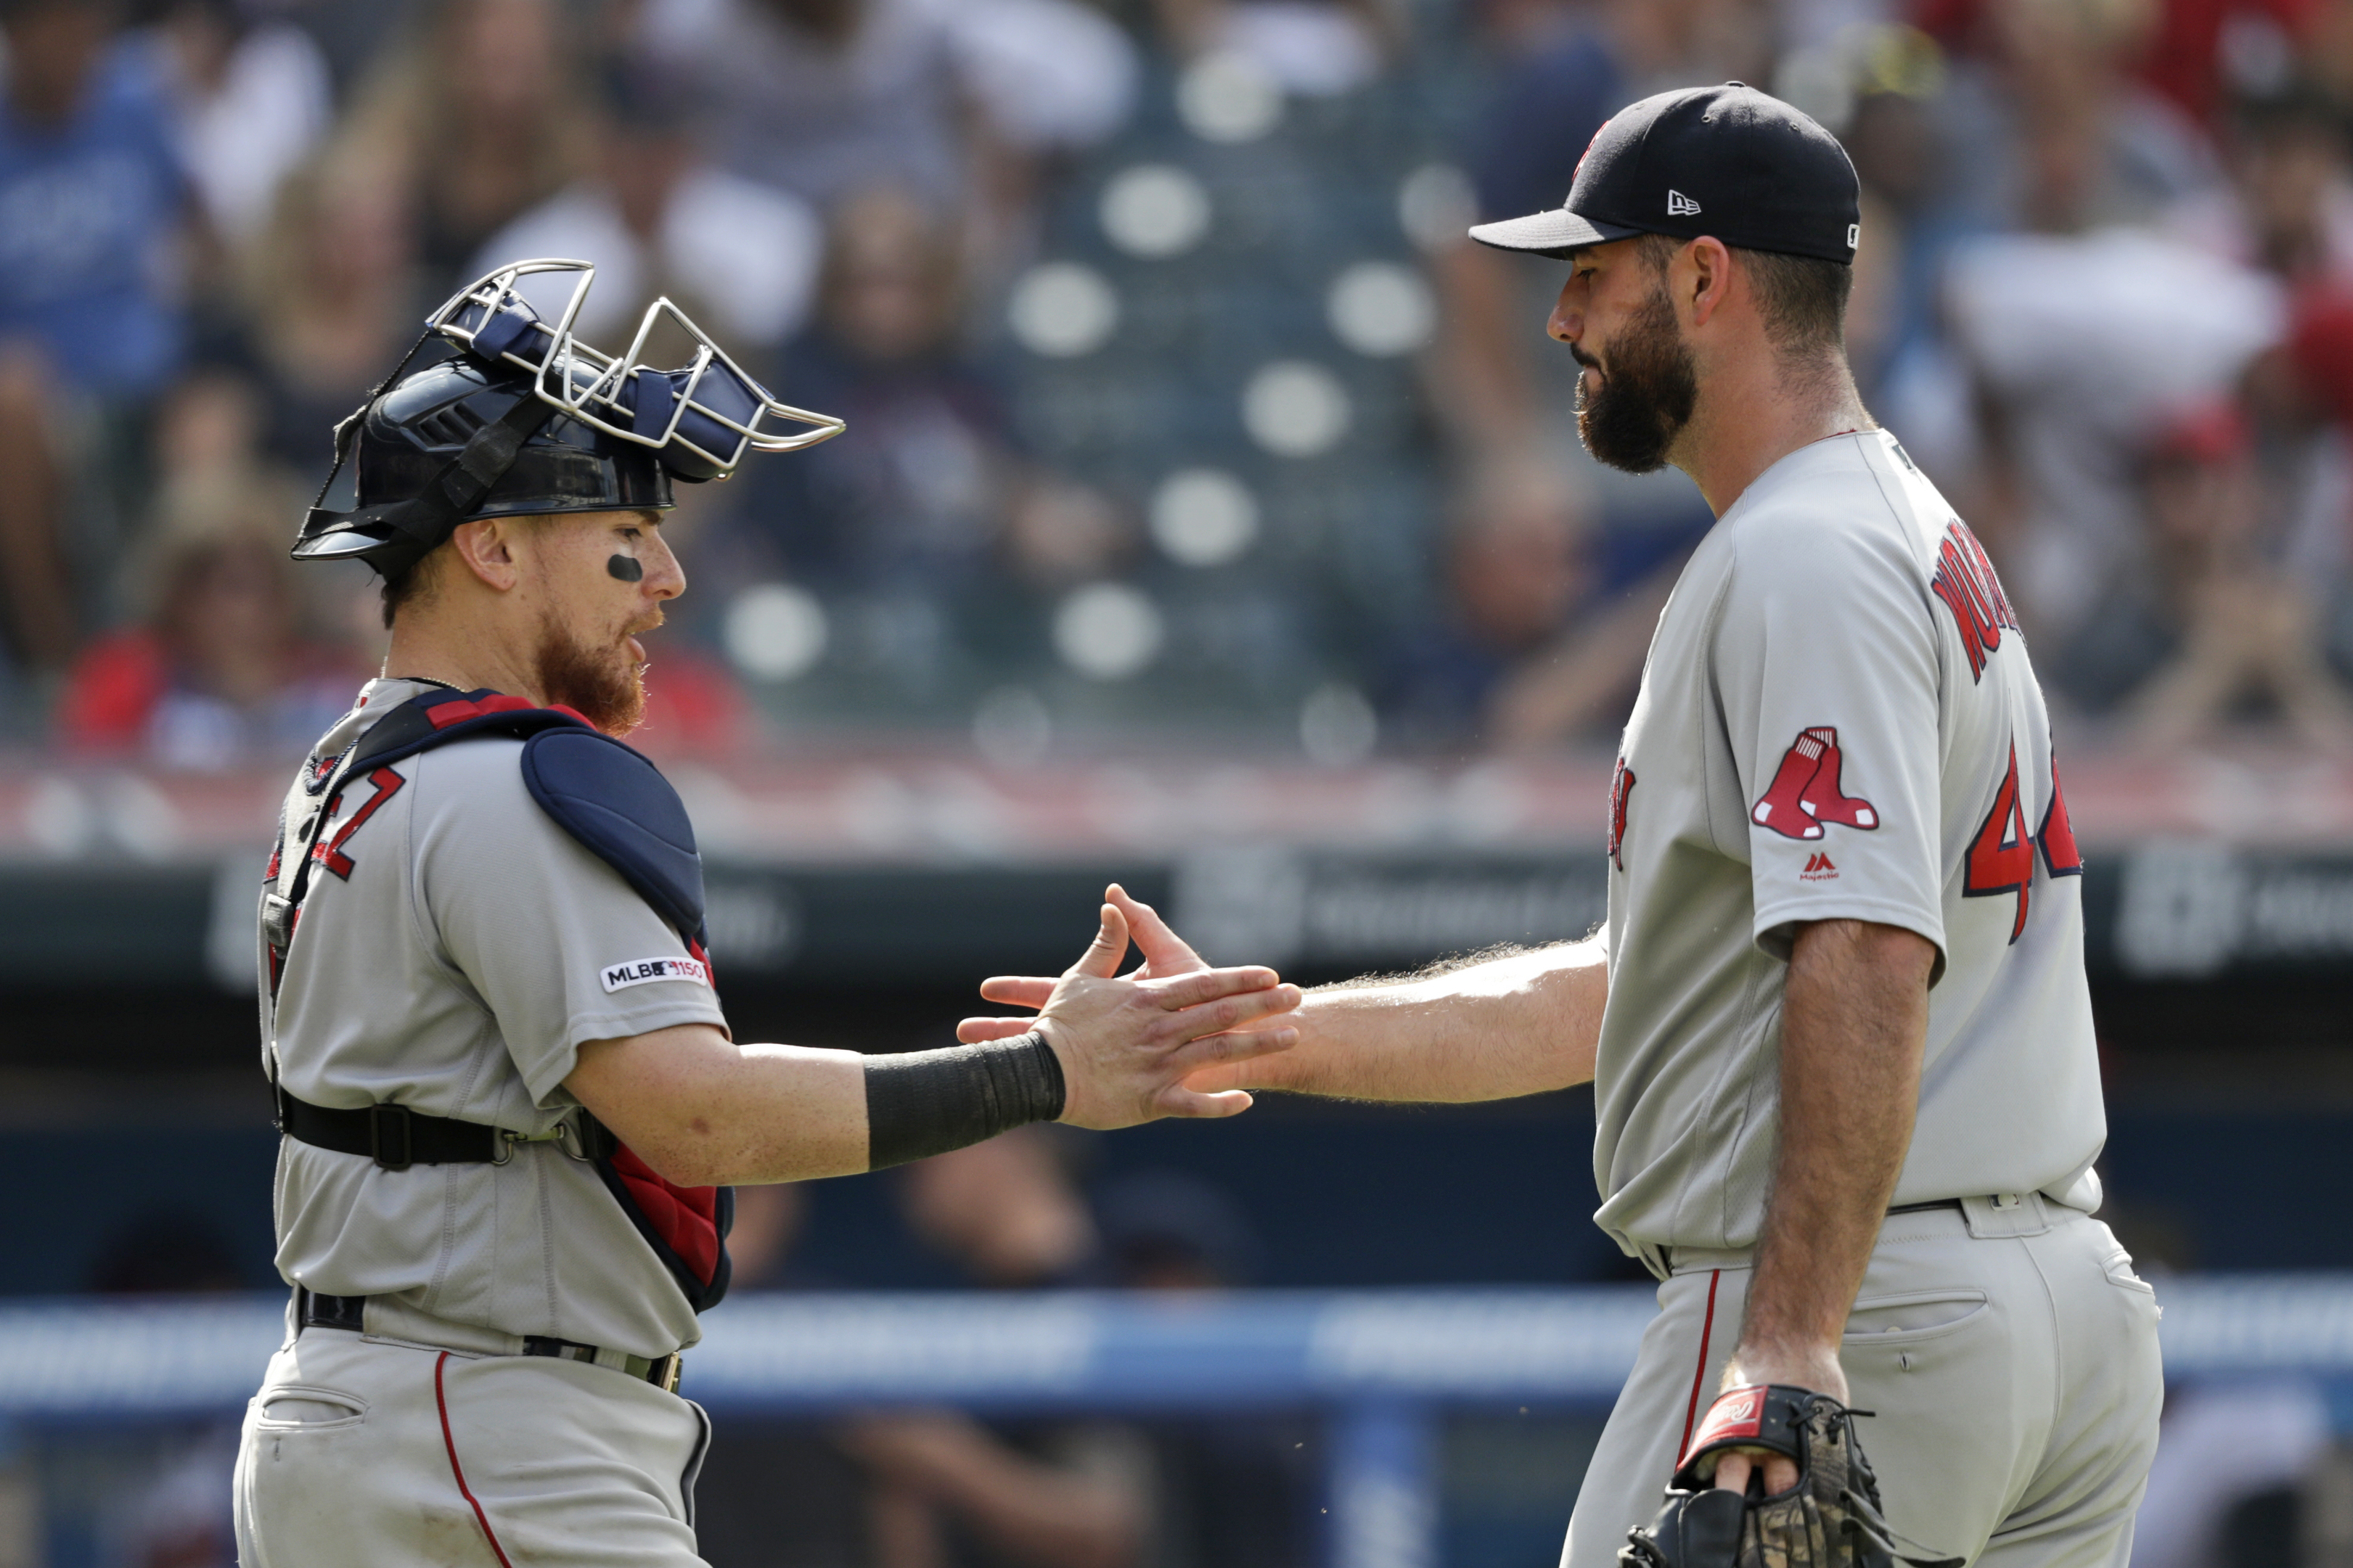 With Red Sox desperate, how long can bullpen survive being used like this?